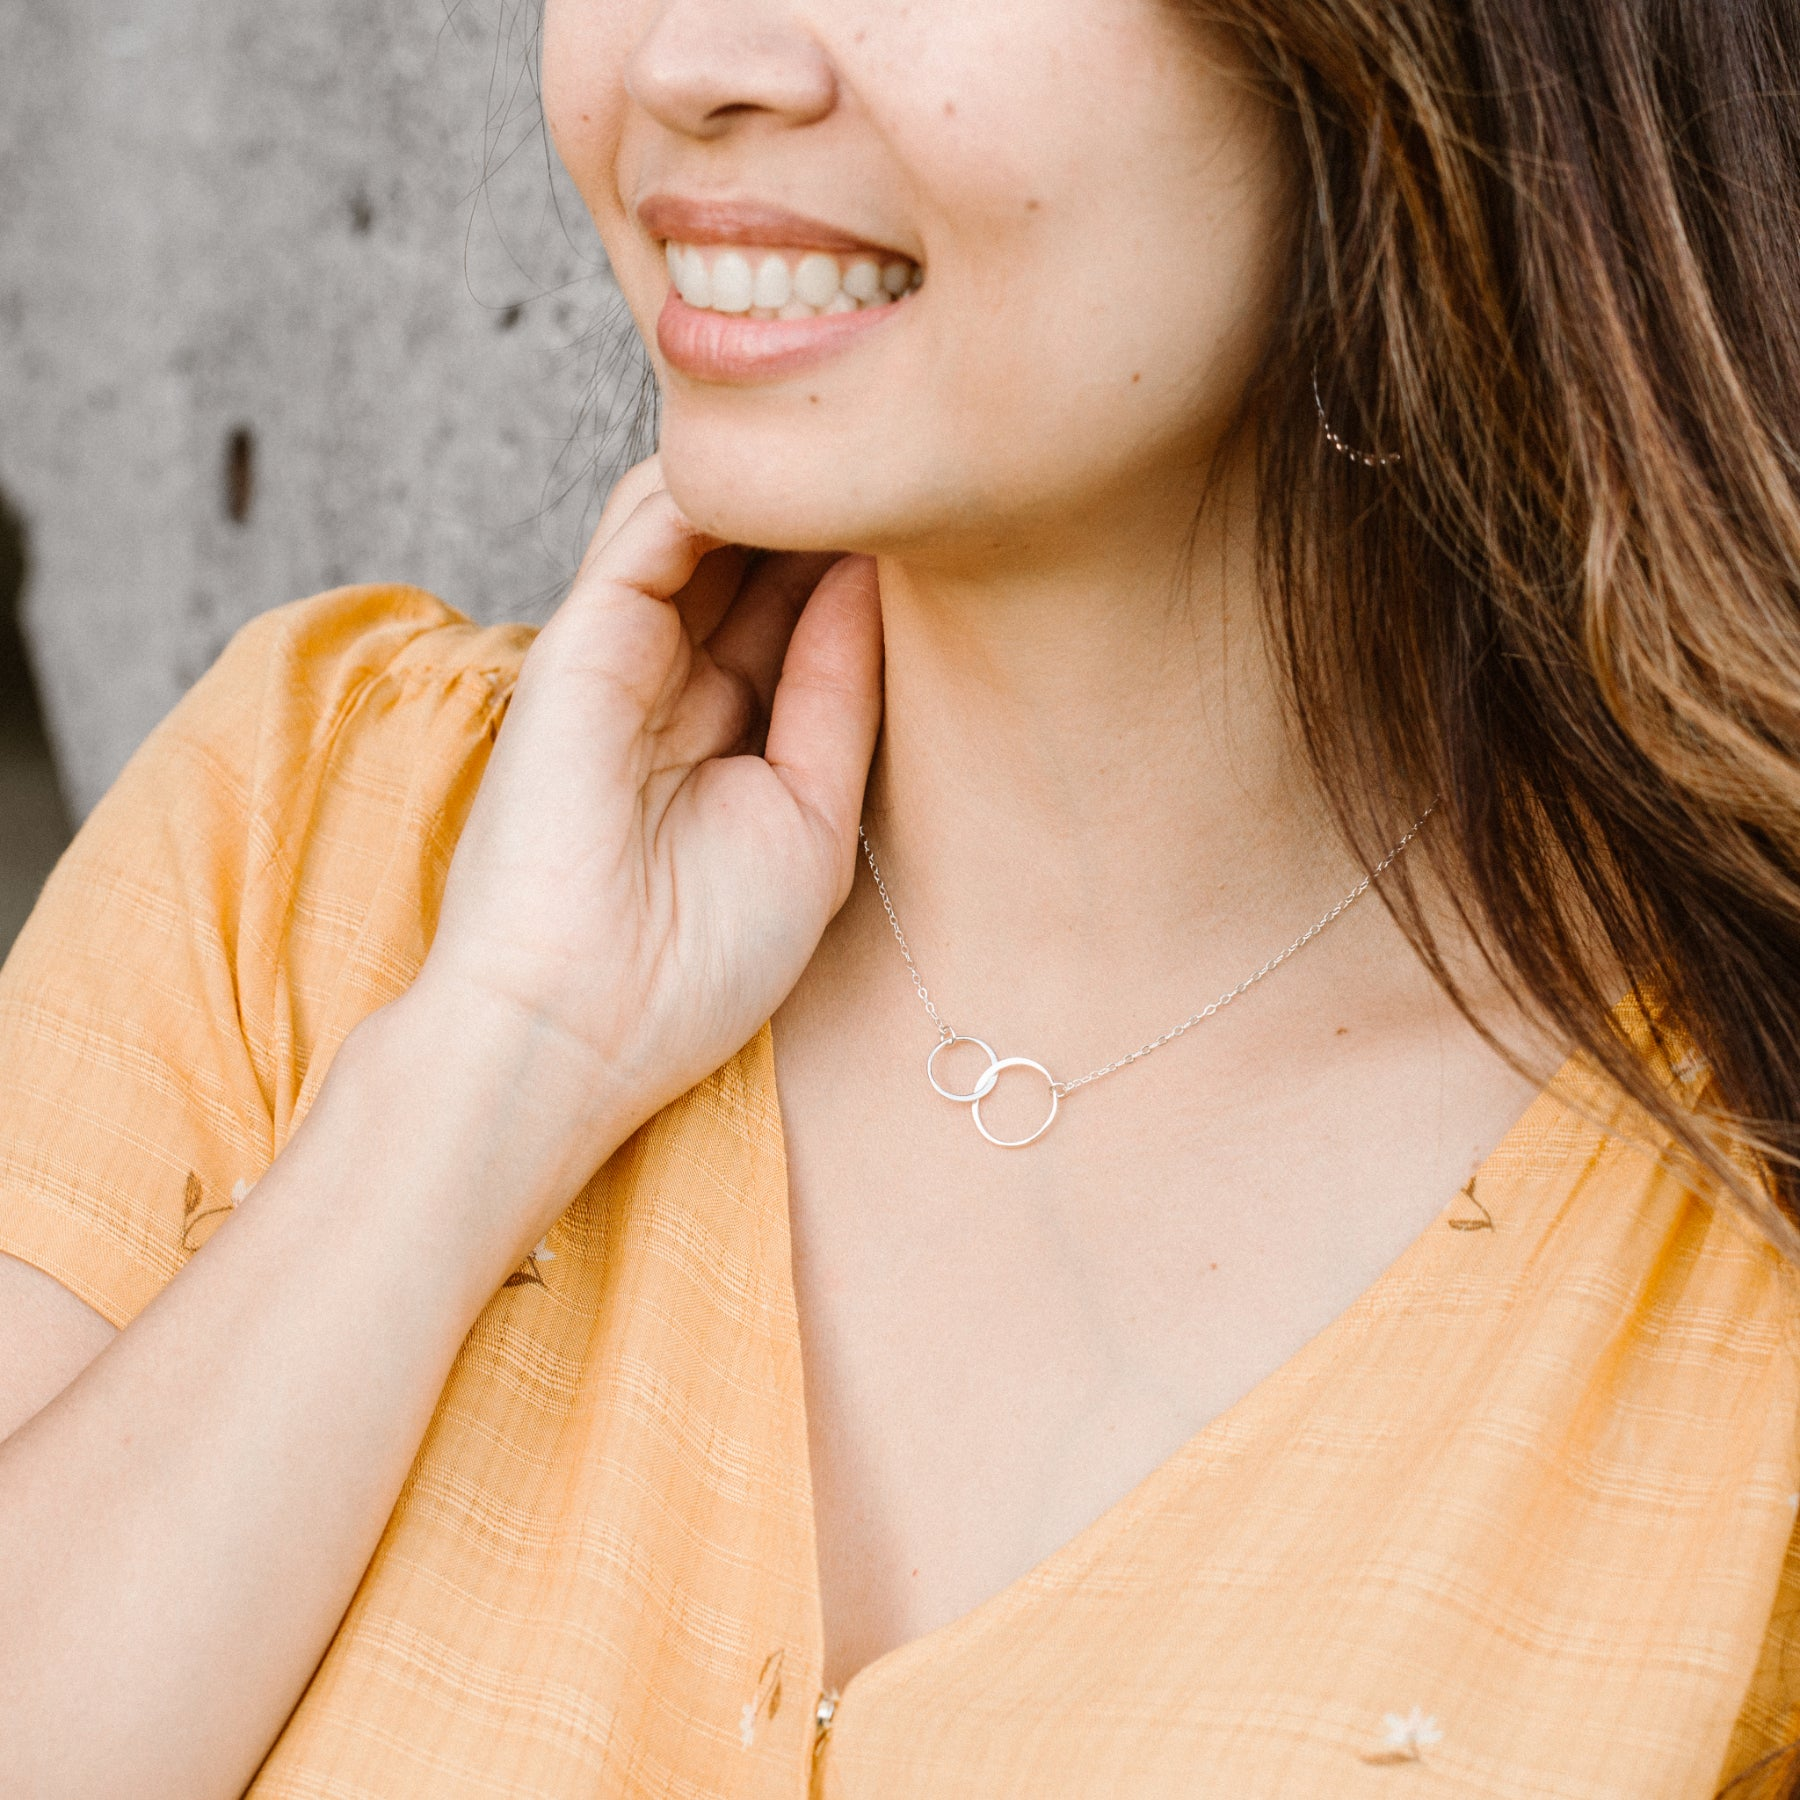 Woman in Orange Shirt Smiling and Wearing Silver Linked Circles Necklace 'We Are Connected' Model Photo by Asha Blooms